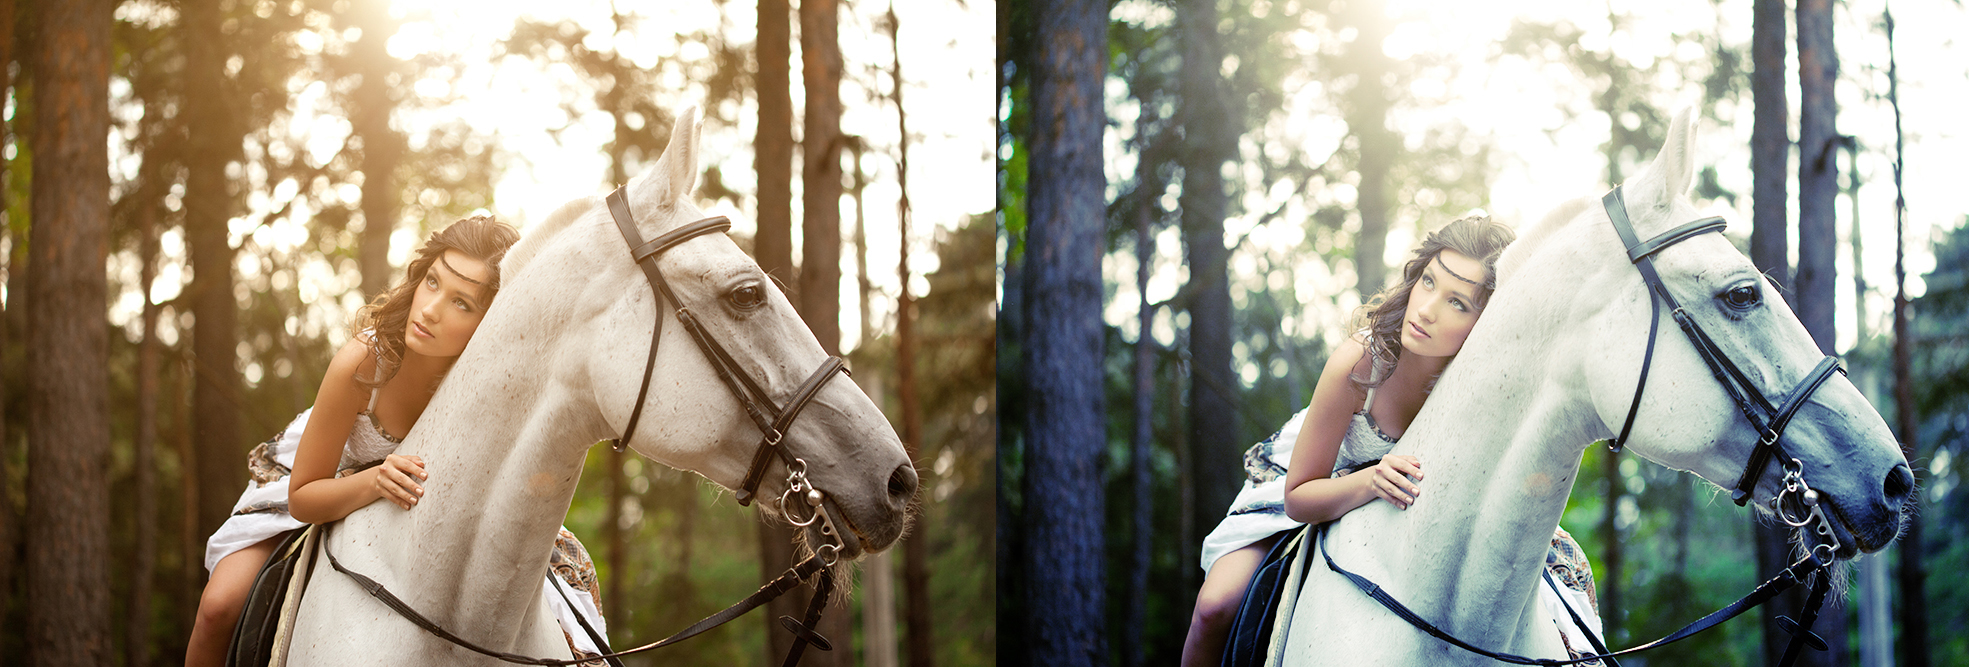 47 Spring Photoshop Actions Collection (Action for photoshop CS5,CS6,CC) example image 3